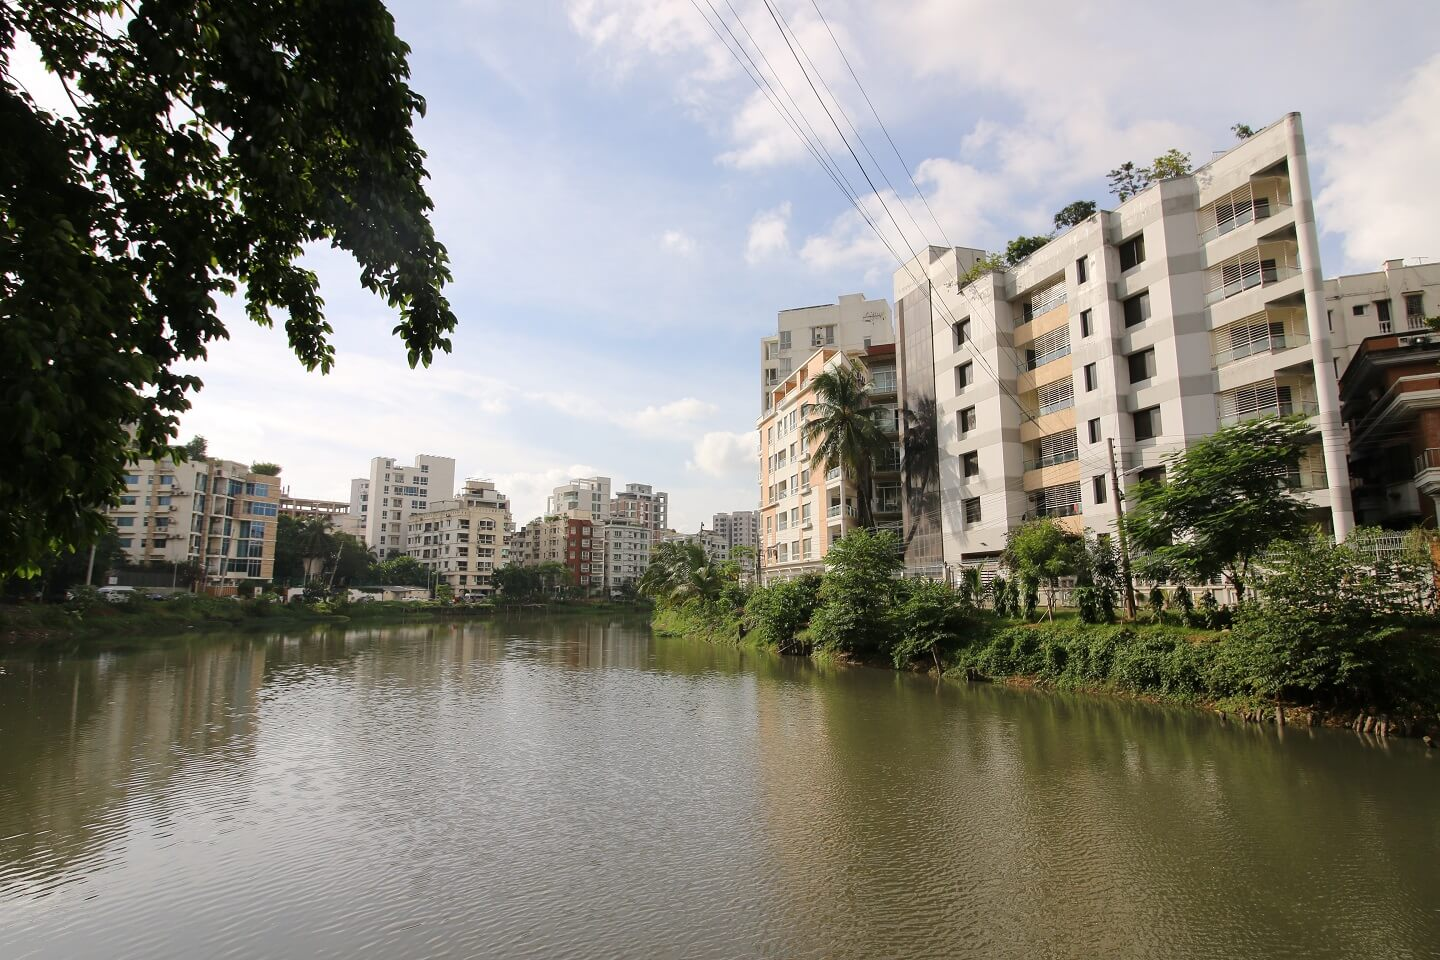 A secured area like Gulshan is certainly the prime choice for residence among expats in Dhaka